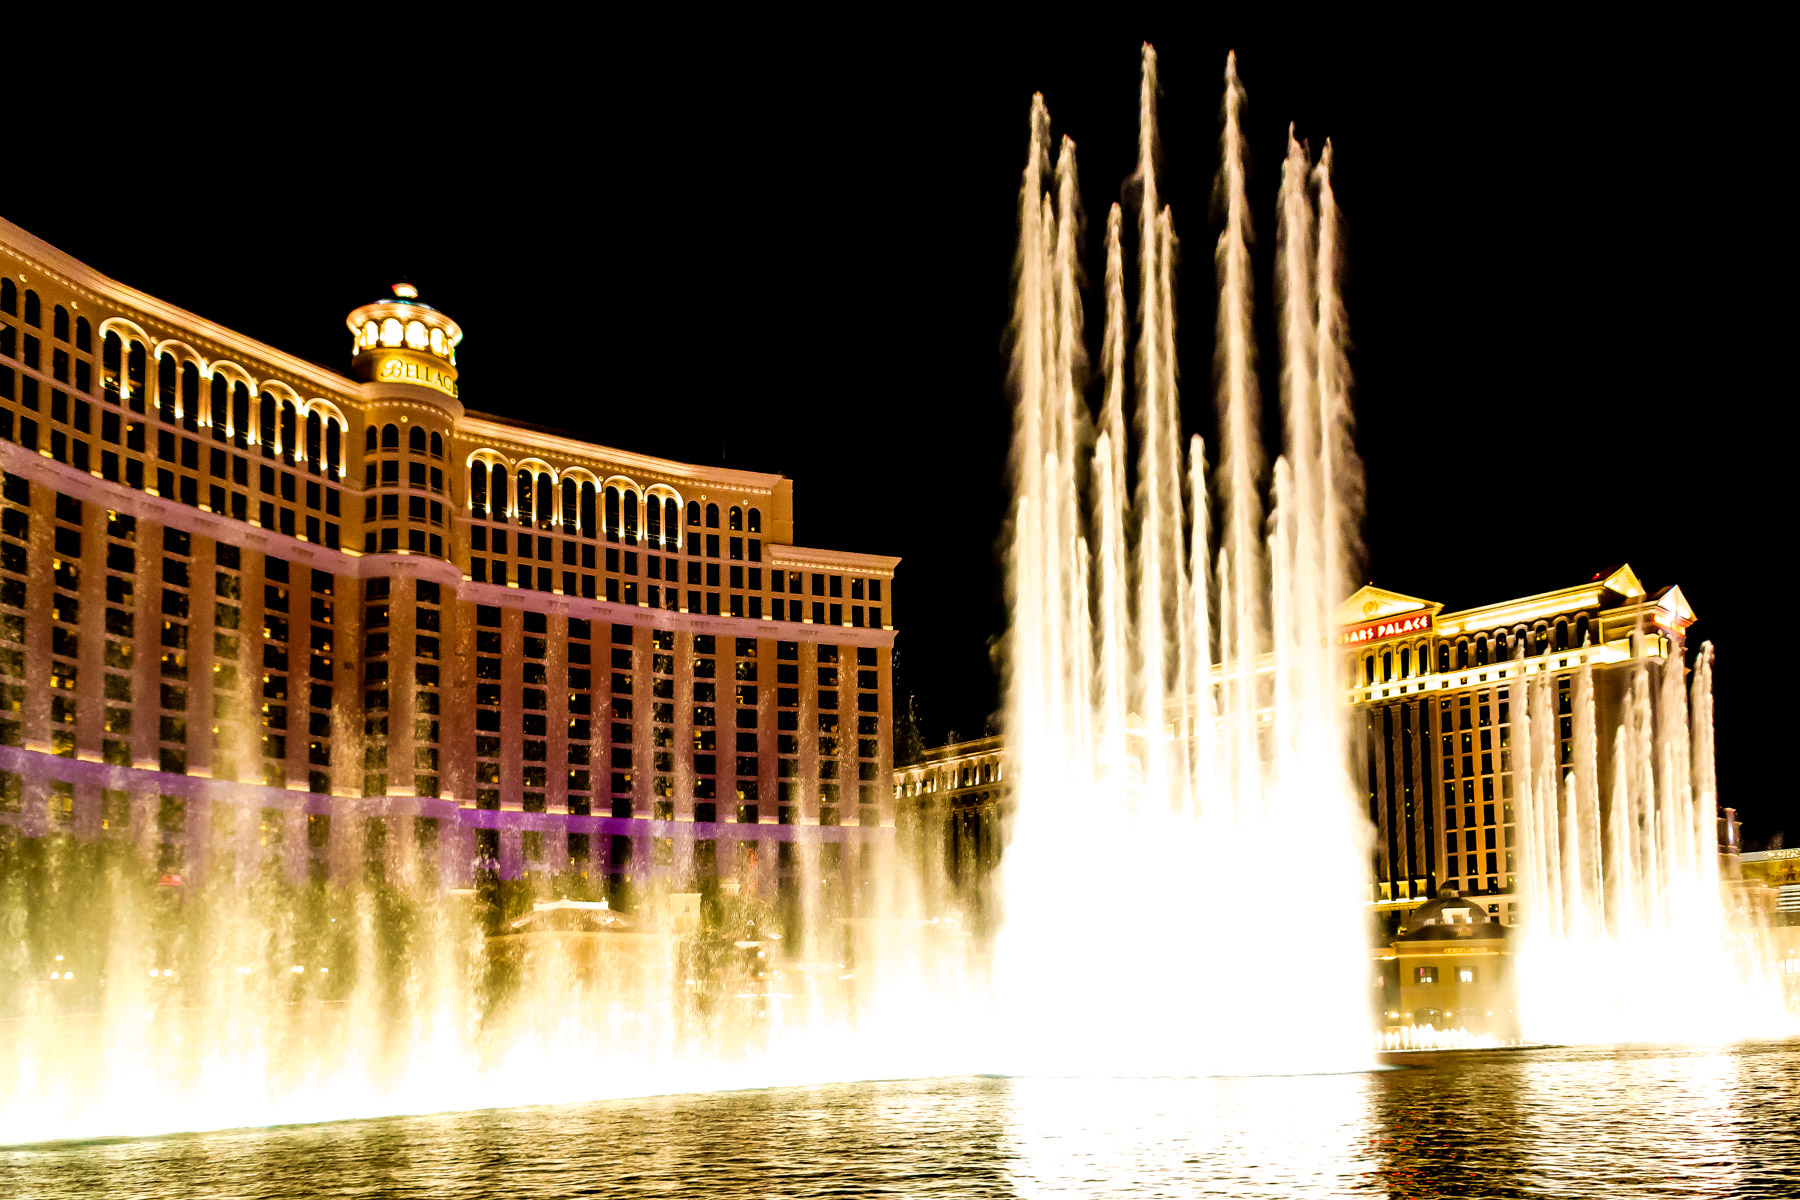 The fountains at The Bellagio, Las Vegas.